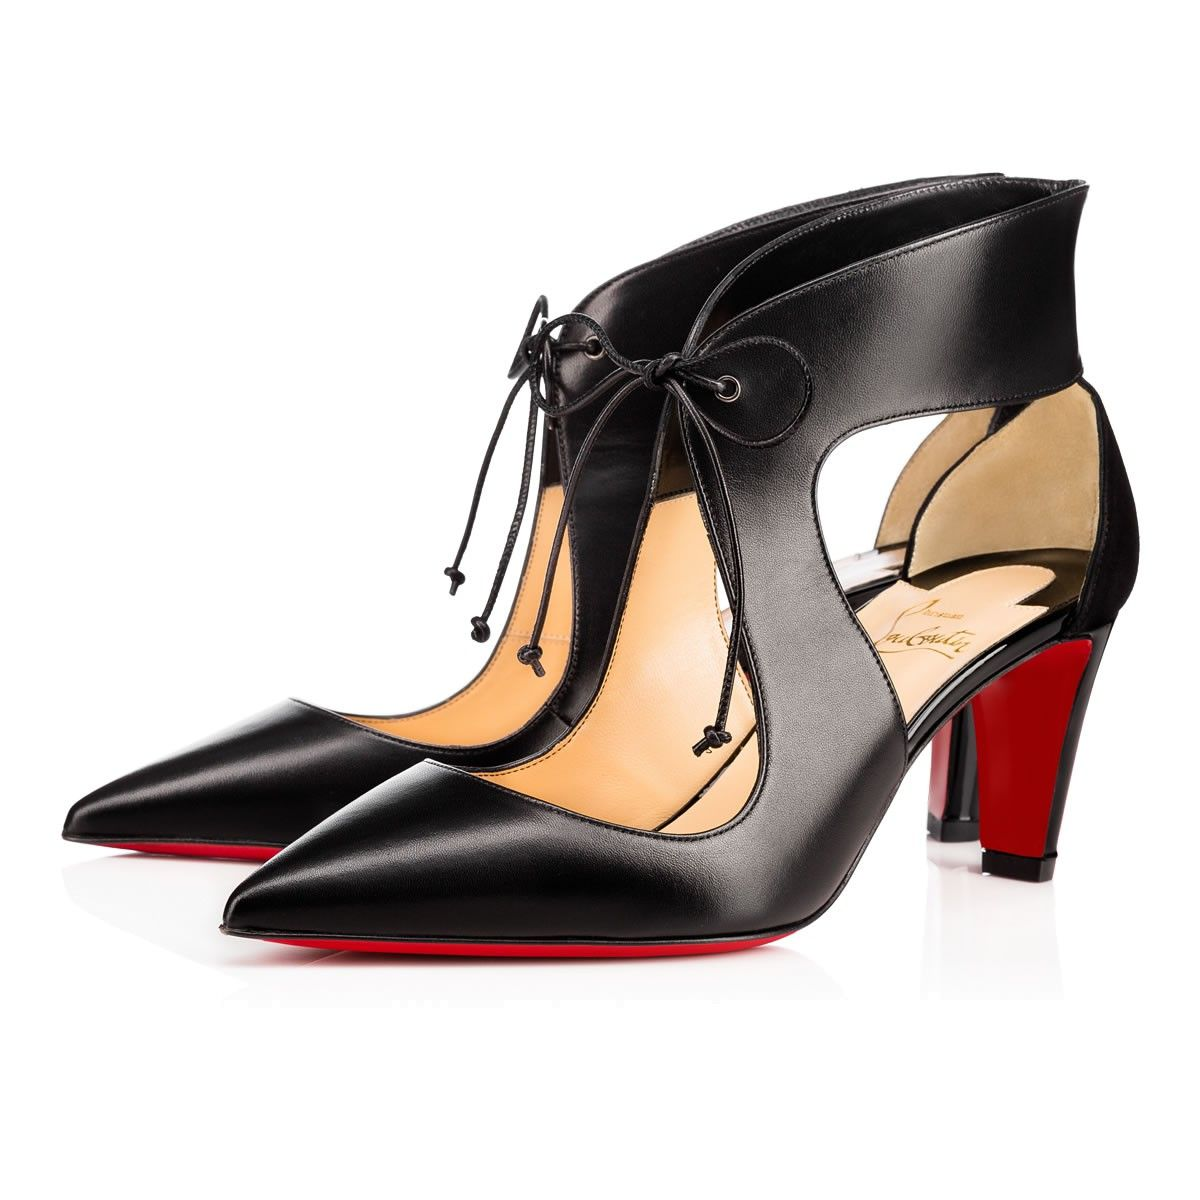 ca99730b1227 Shoes - Ferme Rouge - Christian Louboutin